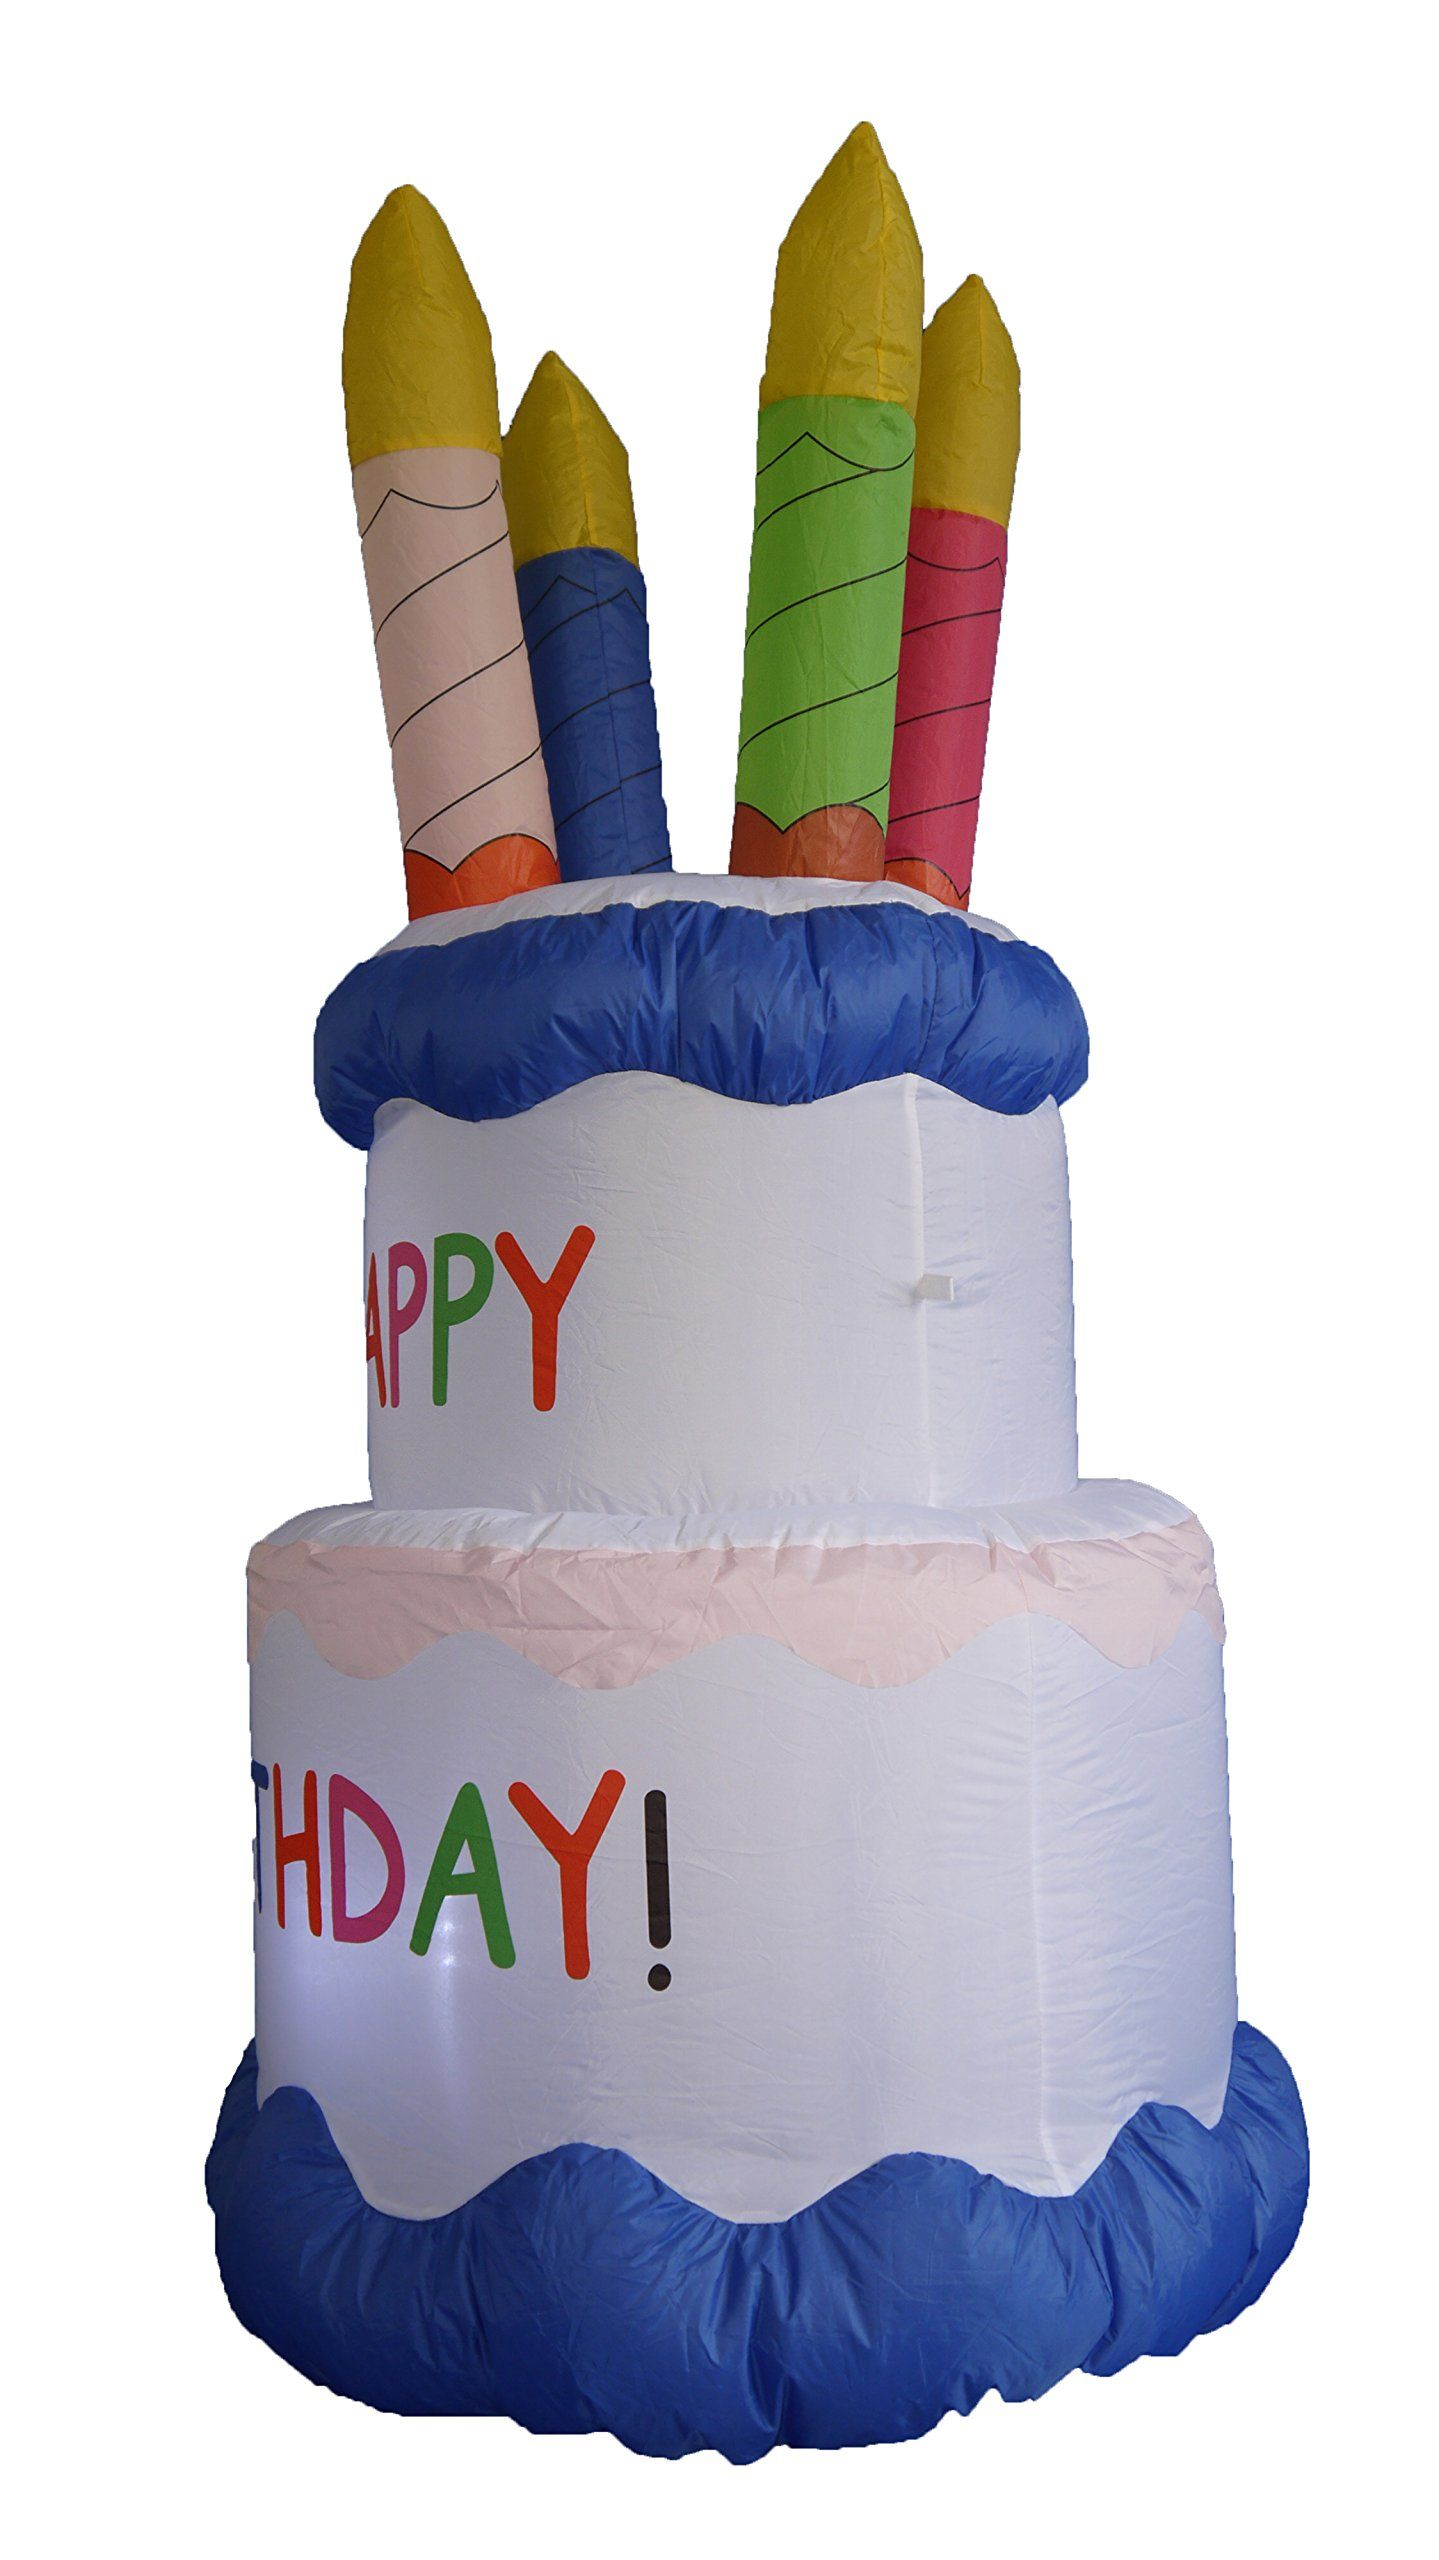 Awesome 6 Foot Inflatable Happy Birthday Cake With Candles Yard Decoration Birthday Cards Printable Inklcafe Filternl